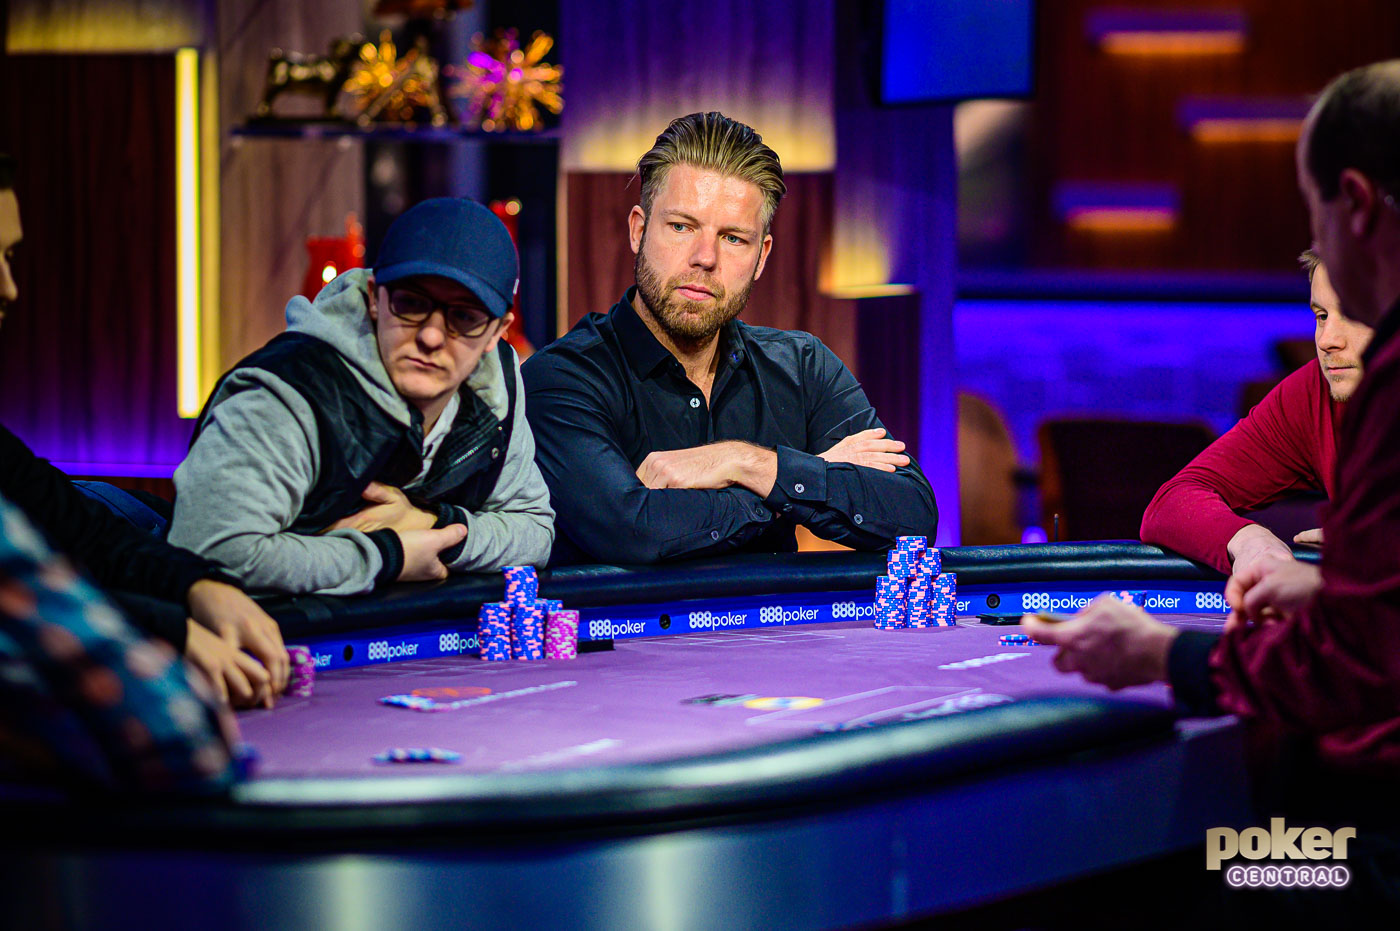 Kahle Burns and Jorryt van Hoof at the final table of Event #5 of the Poker Masters.